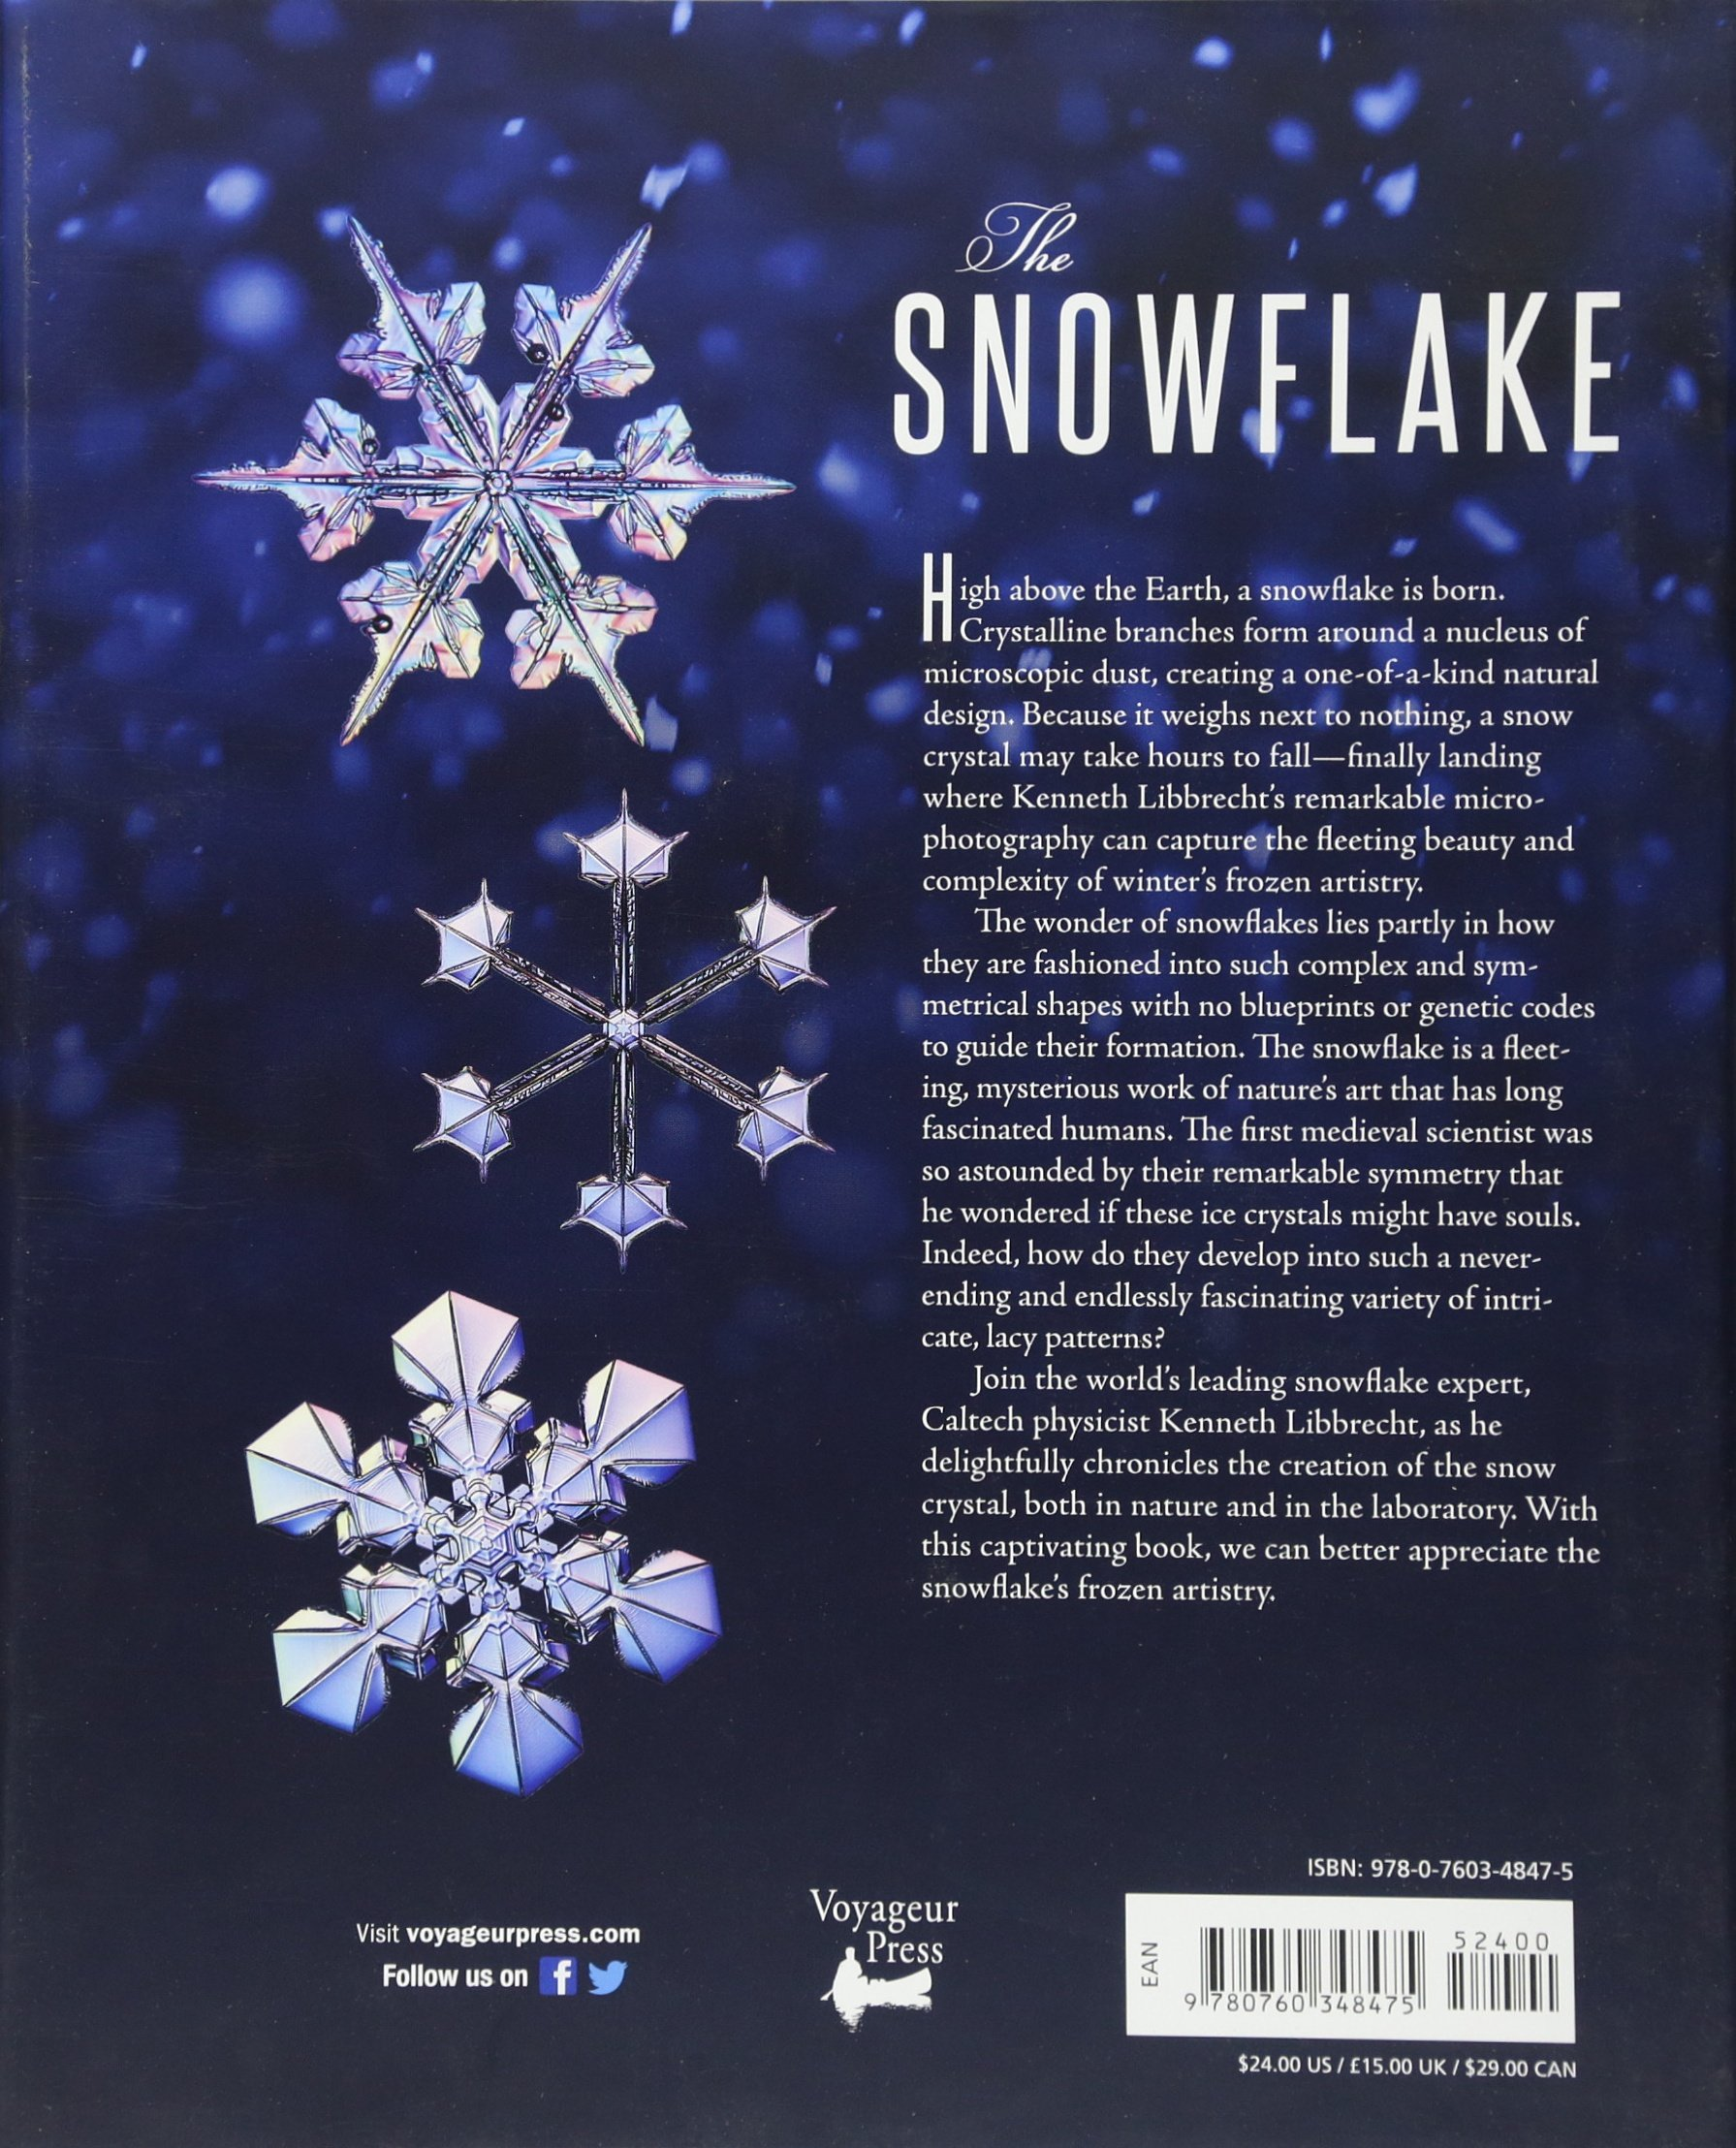 Amazon.com: The Snowflake: Winter's Frozen Artistry (9780760348475): Kenneth  Libbrecht, Rachel Wing: Books